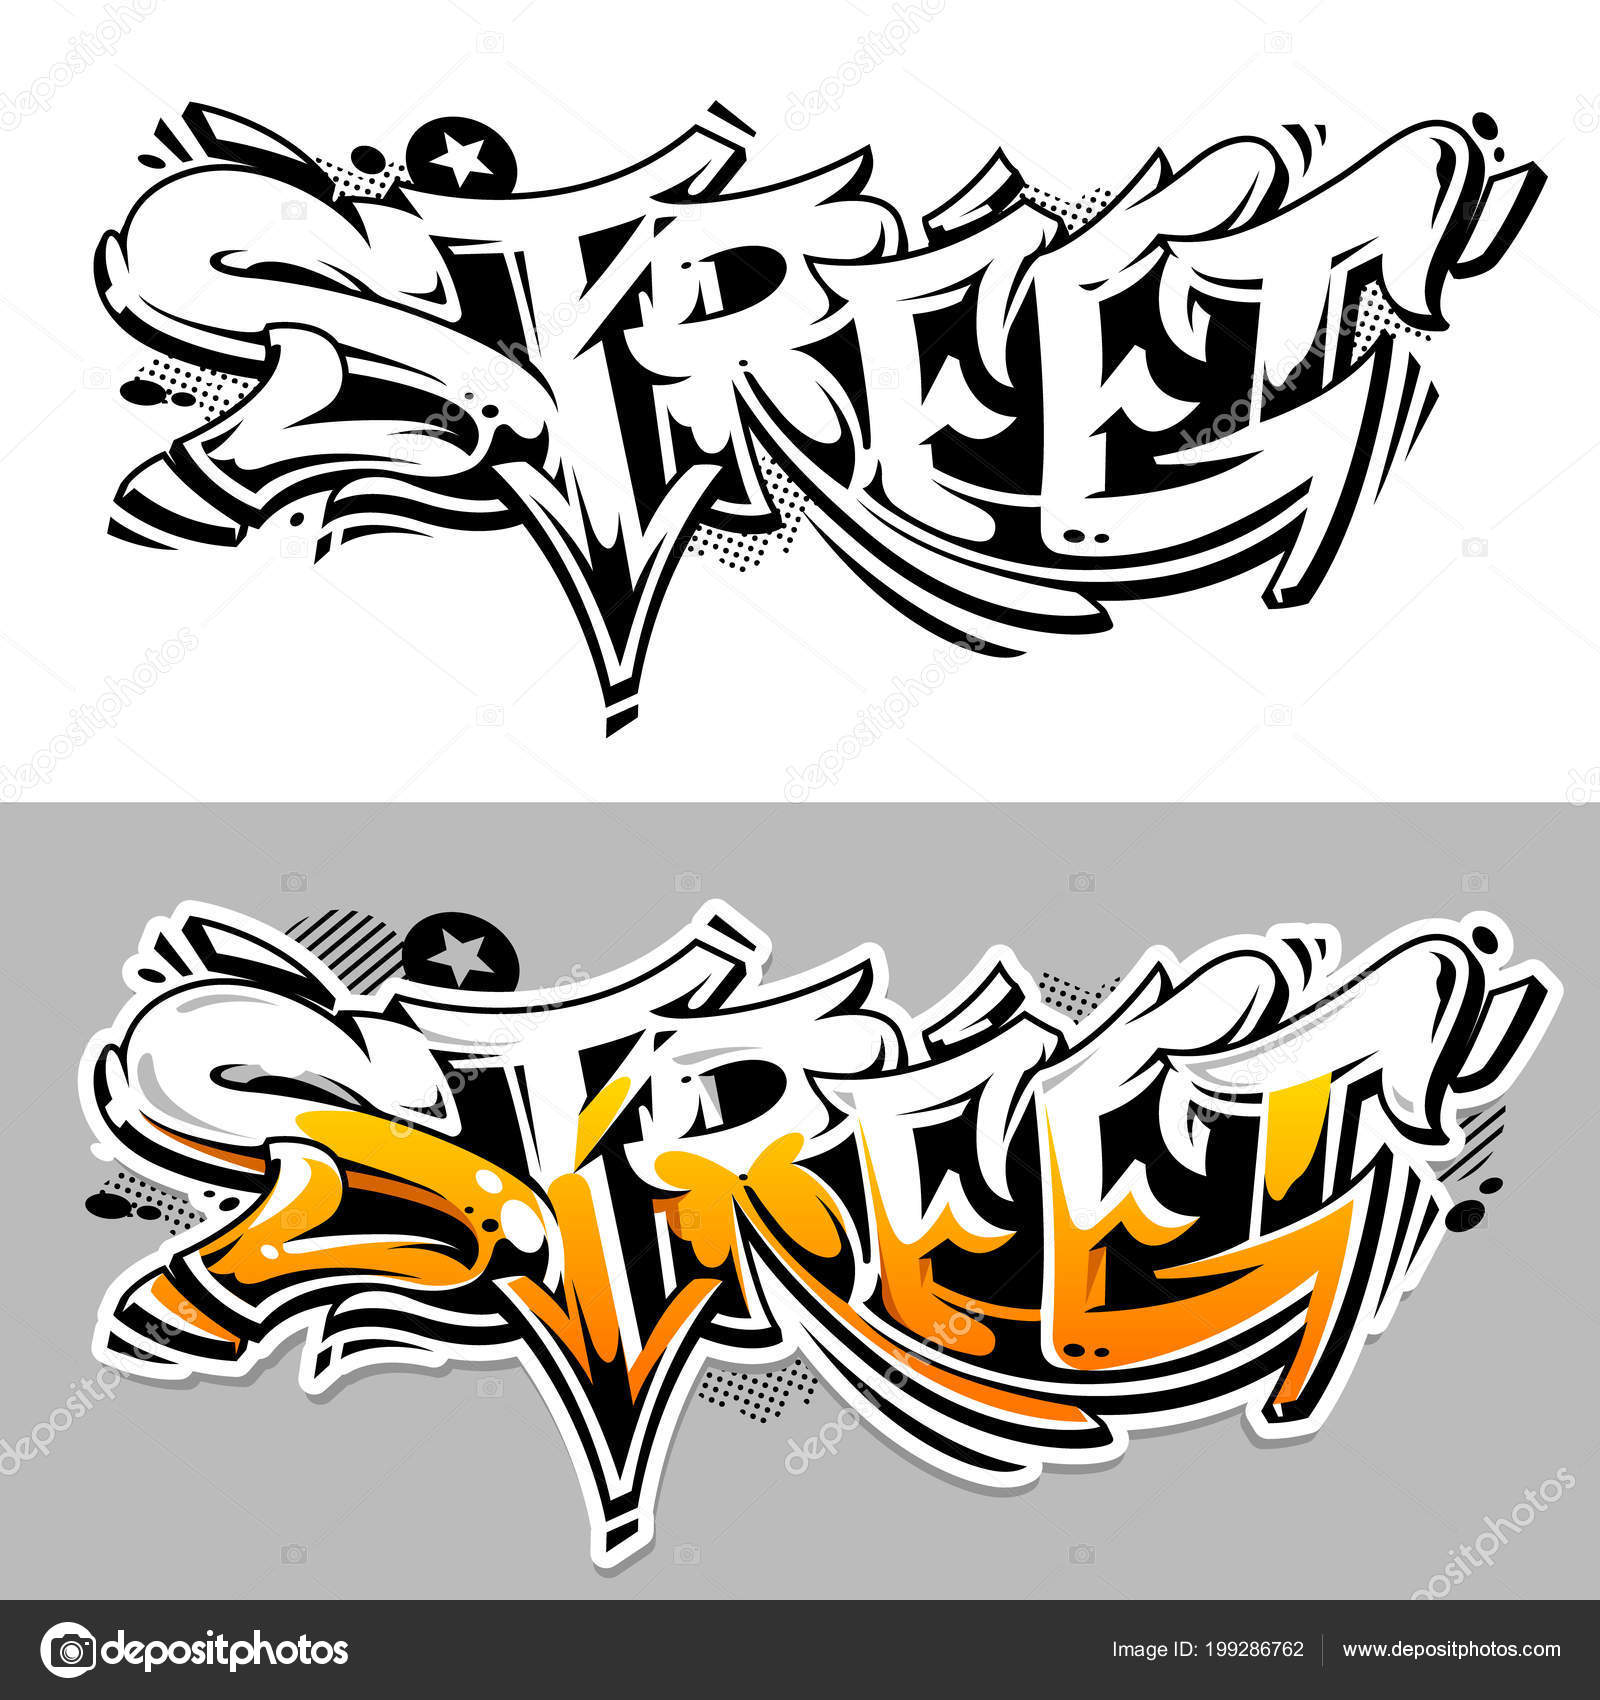 Street Graffiti Vector Lettering Abstract Three Dimensional Art Monochrome And Color Variations Wild Style